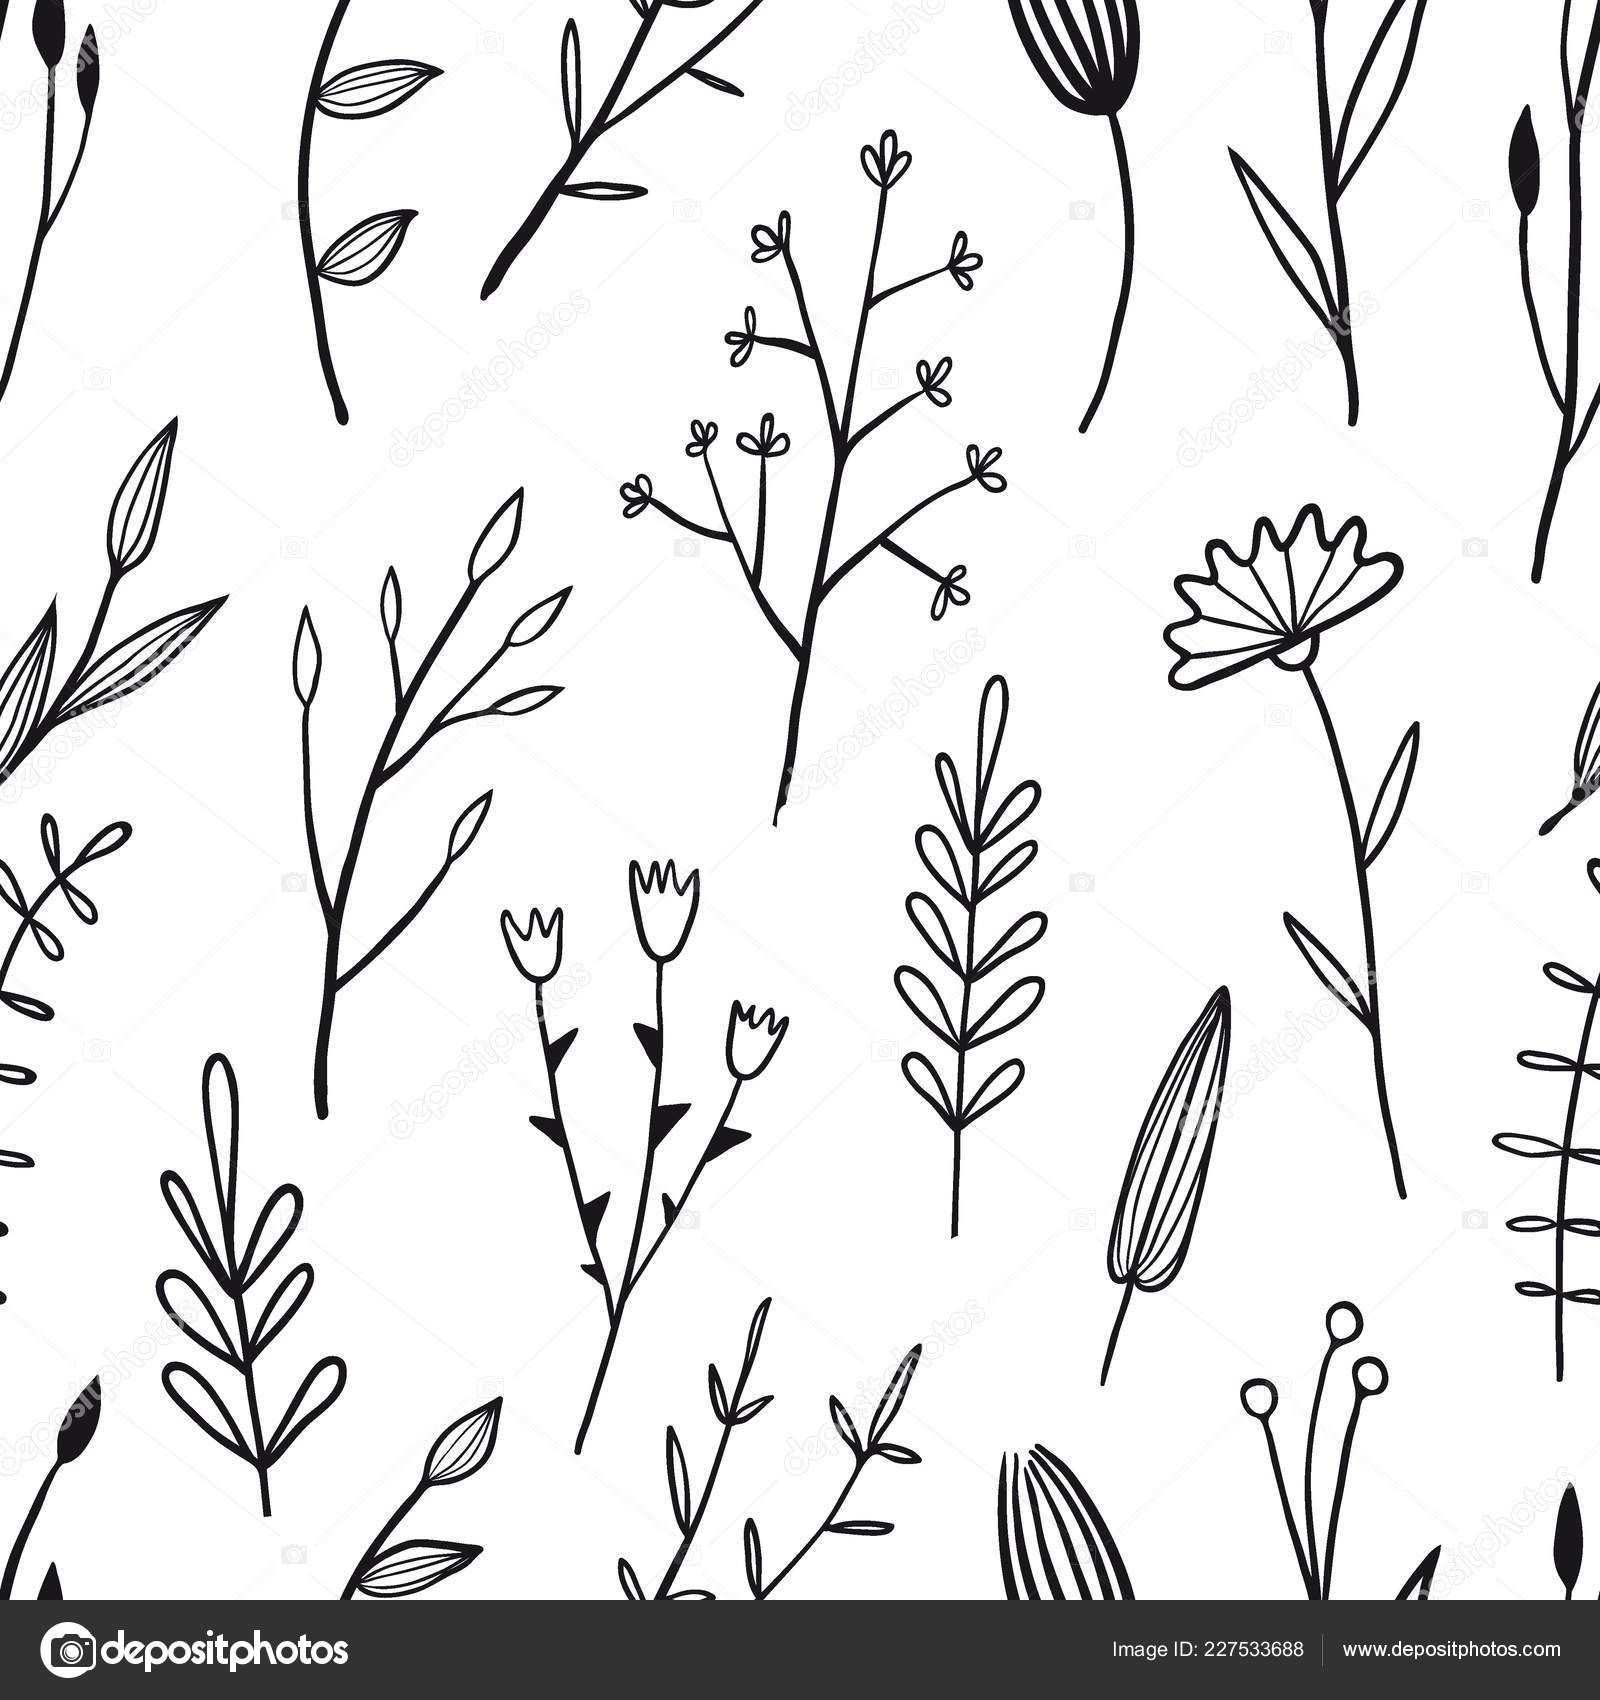 Flower Simple Seamless Pattern Graphic Design Paper Textile Print